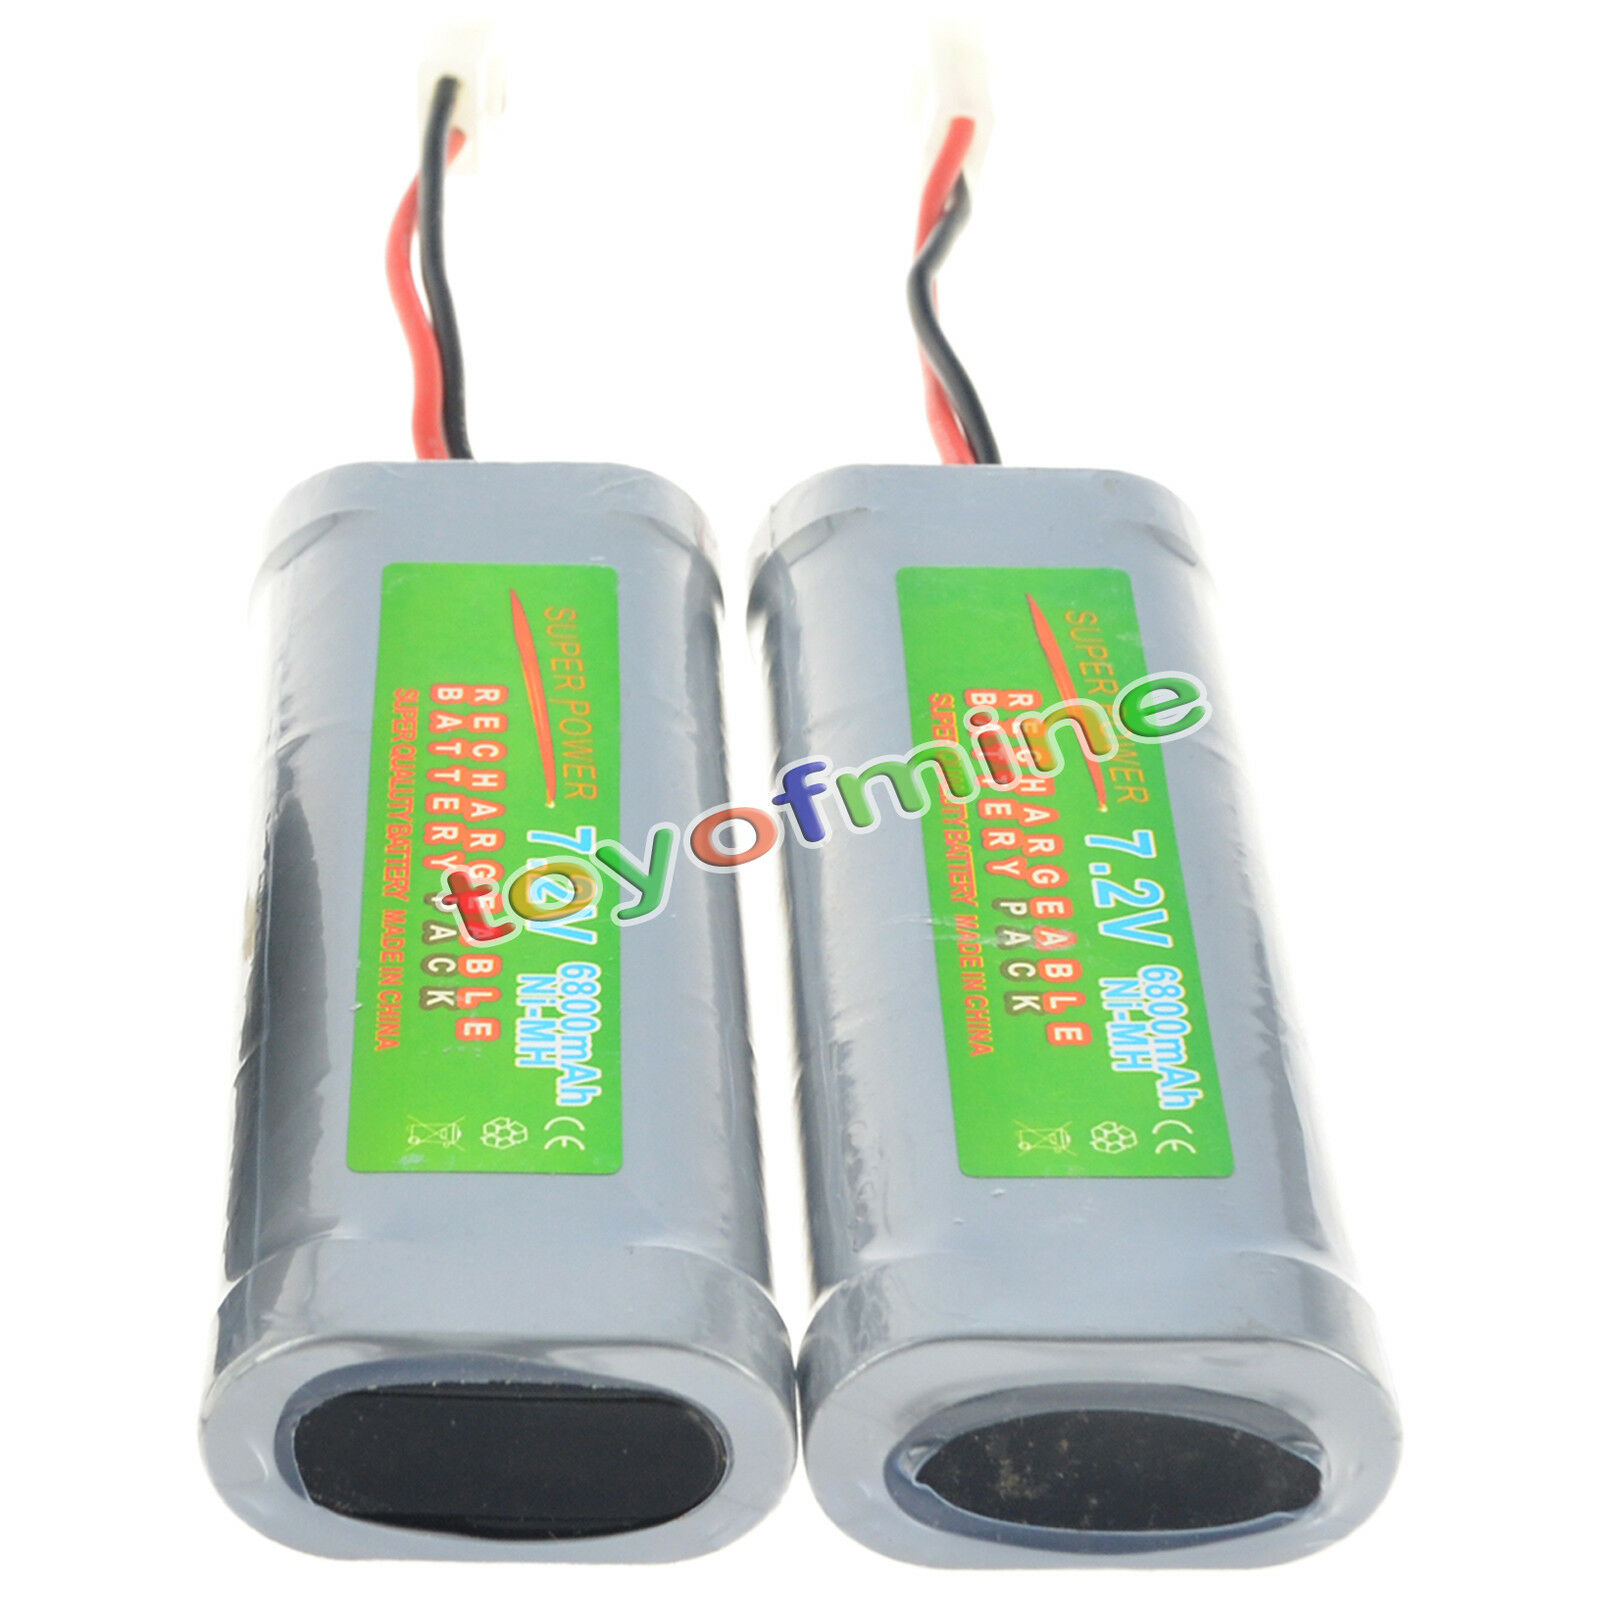 How long to charge x thousand mAH RC car batteries